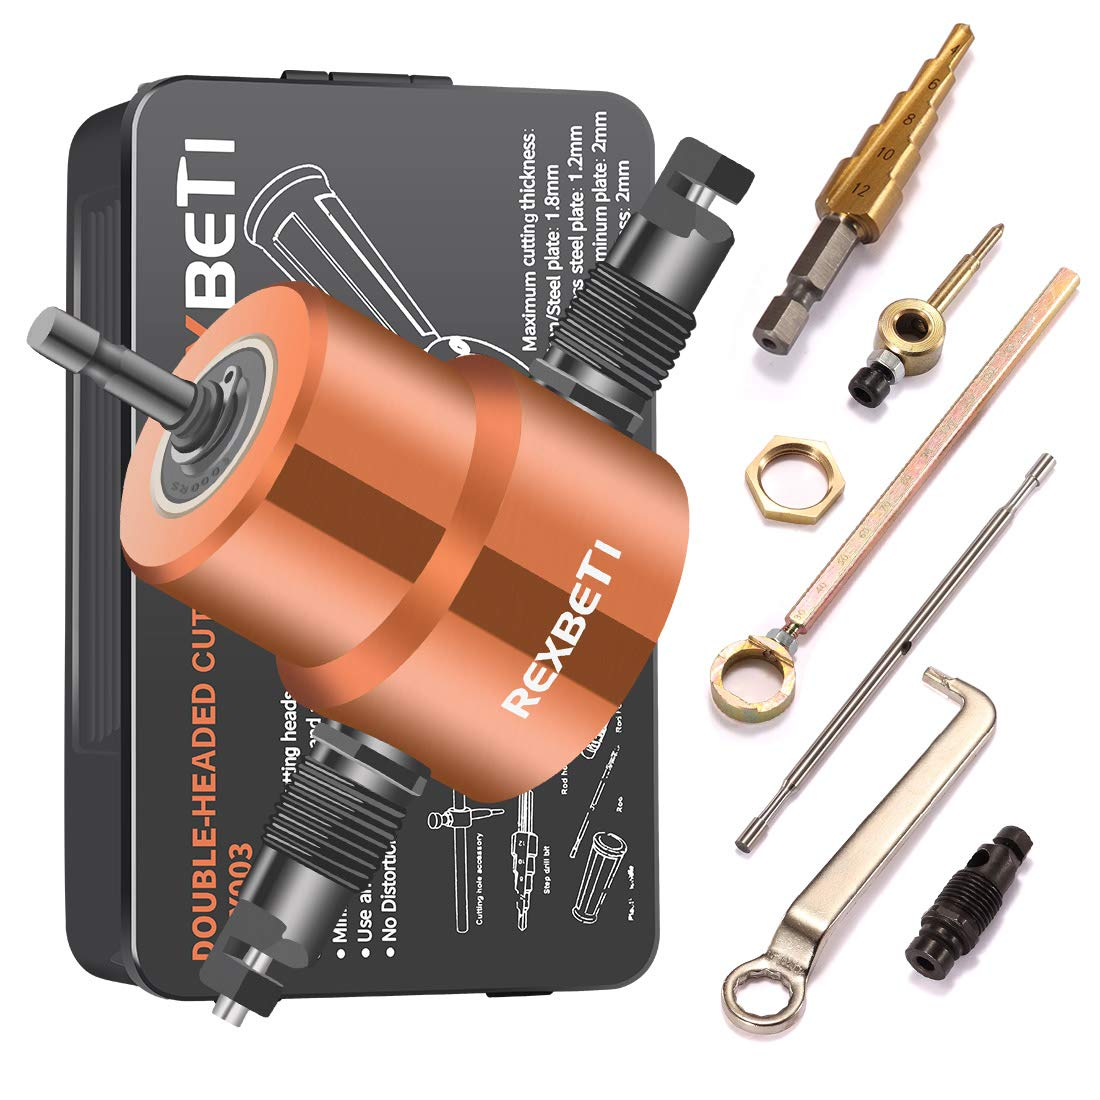 Double Headed Sheet Metal Nibbler, REXBETI Drill Attachment Metal Cutter with Extra Punch and Die, 1 Cutting Hole Accessory and 1 Step Drill Bit, Perfect for Straight Curve and Circle Cutting (gold) by REXBETI